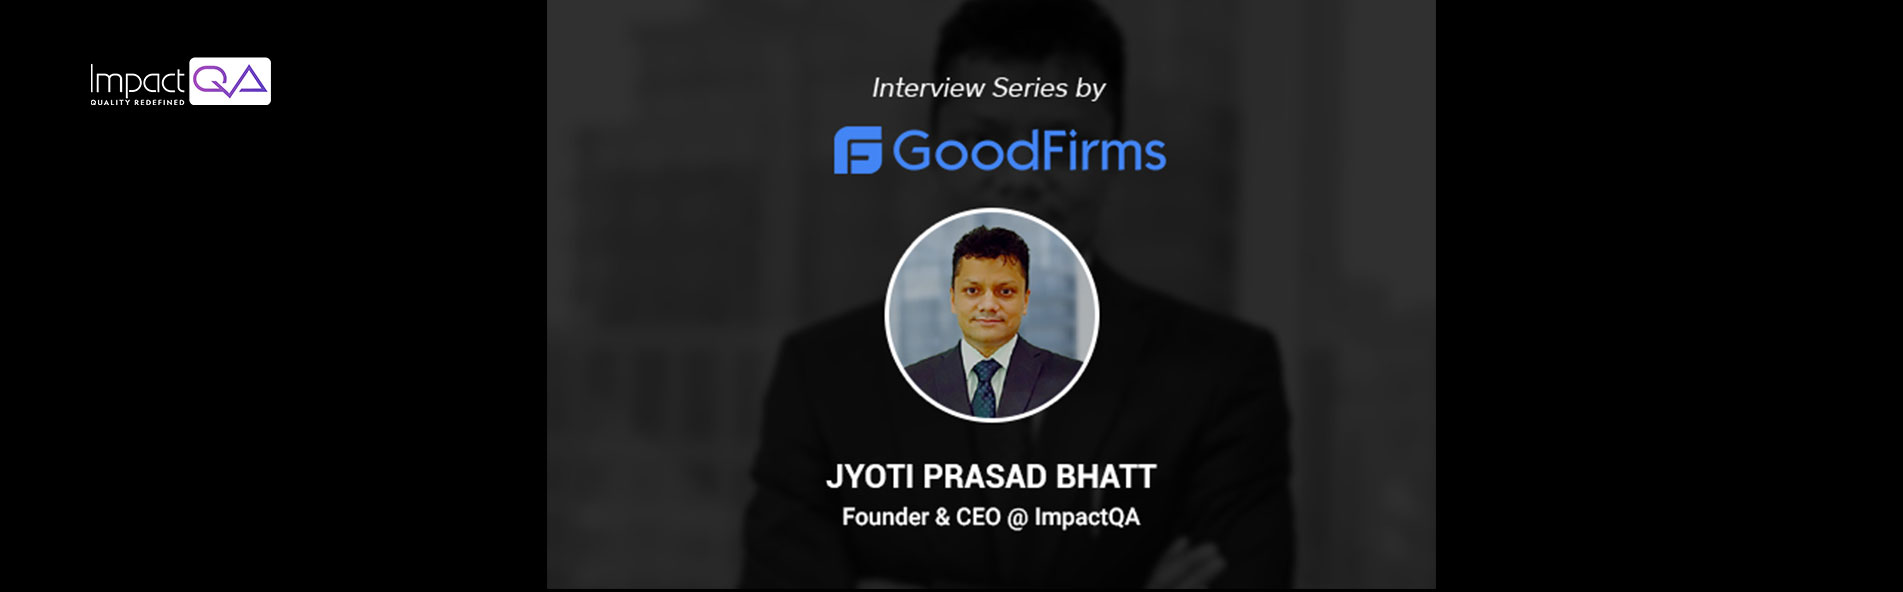 ImpactQA's CEO, JP Bhatt, Leverages His Software Testing Expertise & Entrepreneurial Skills to Achieve the Firms' Vision & Mission: GoodFirms